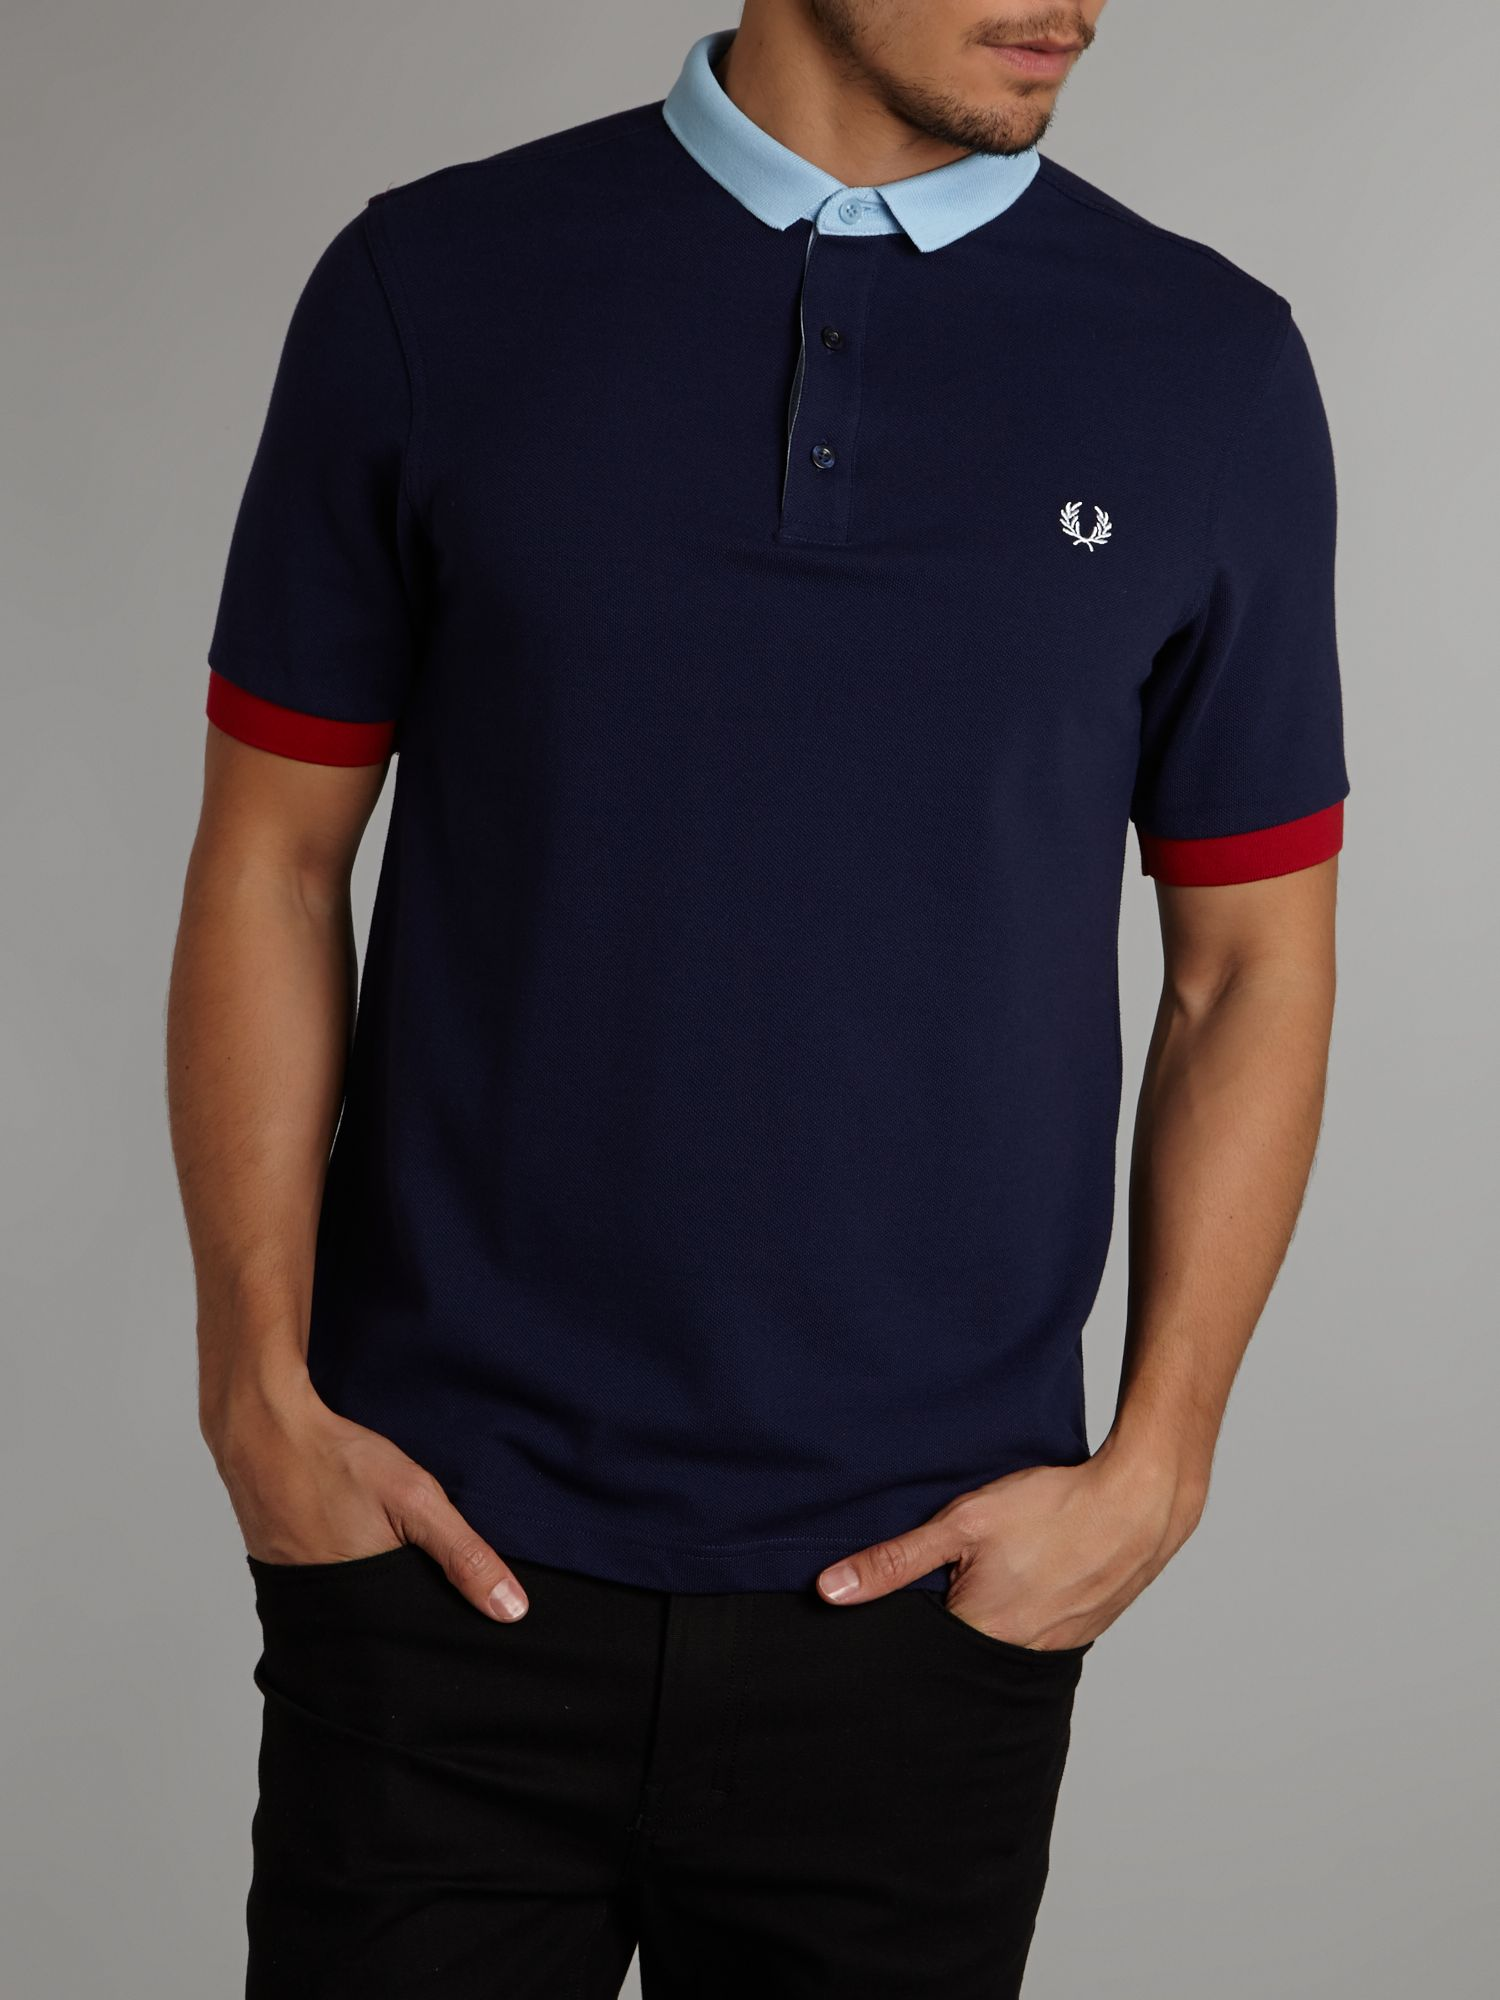 Block collar polo shirt